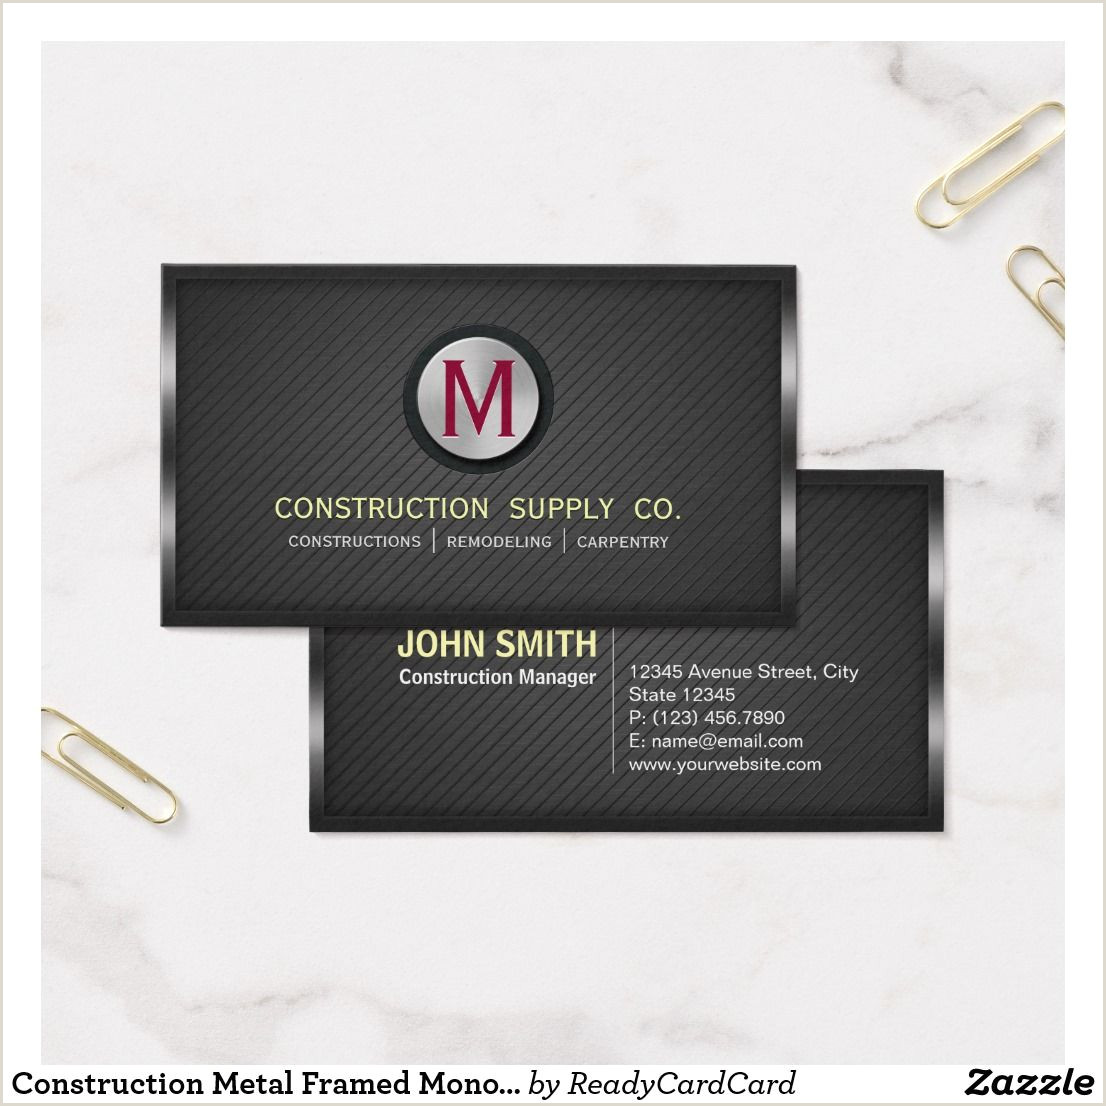 Business Cards Unique Renovation Construction Metal Framed Monogram Twill Material Business